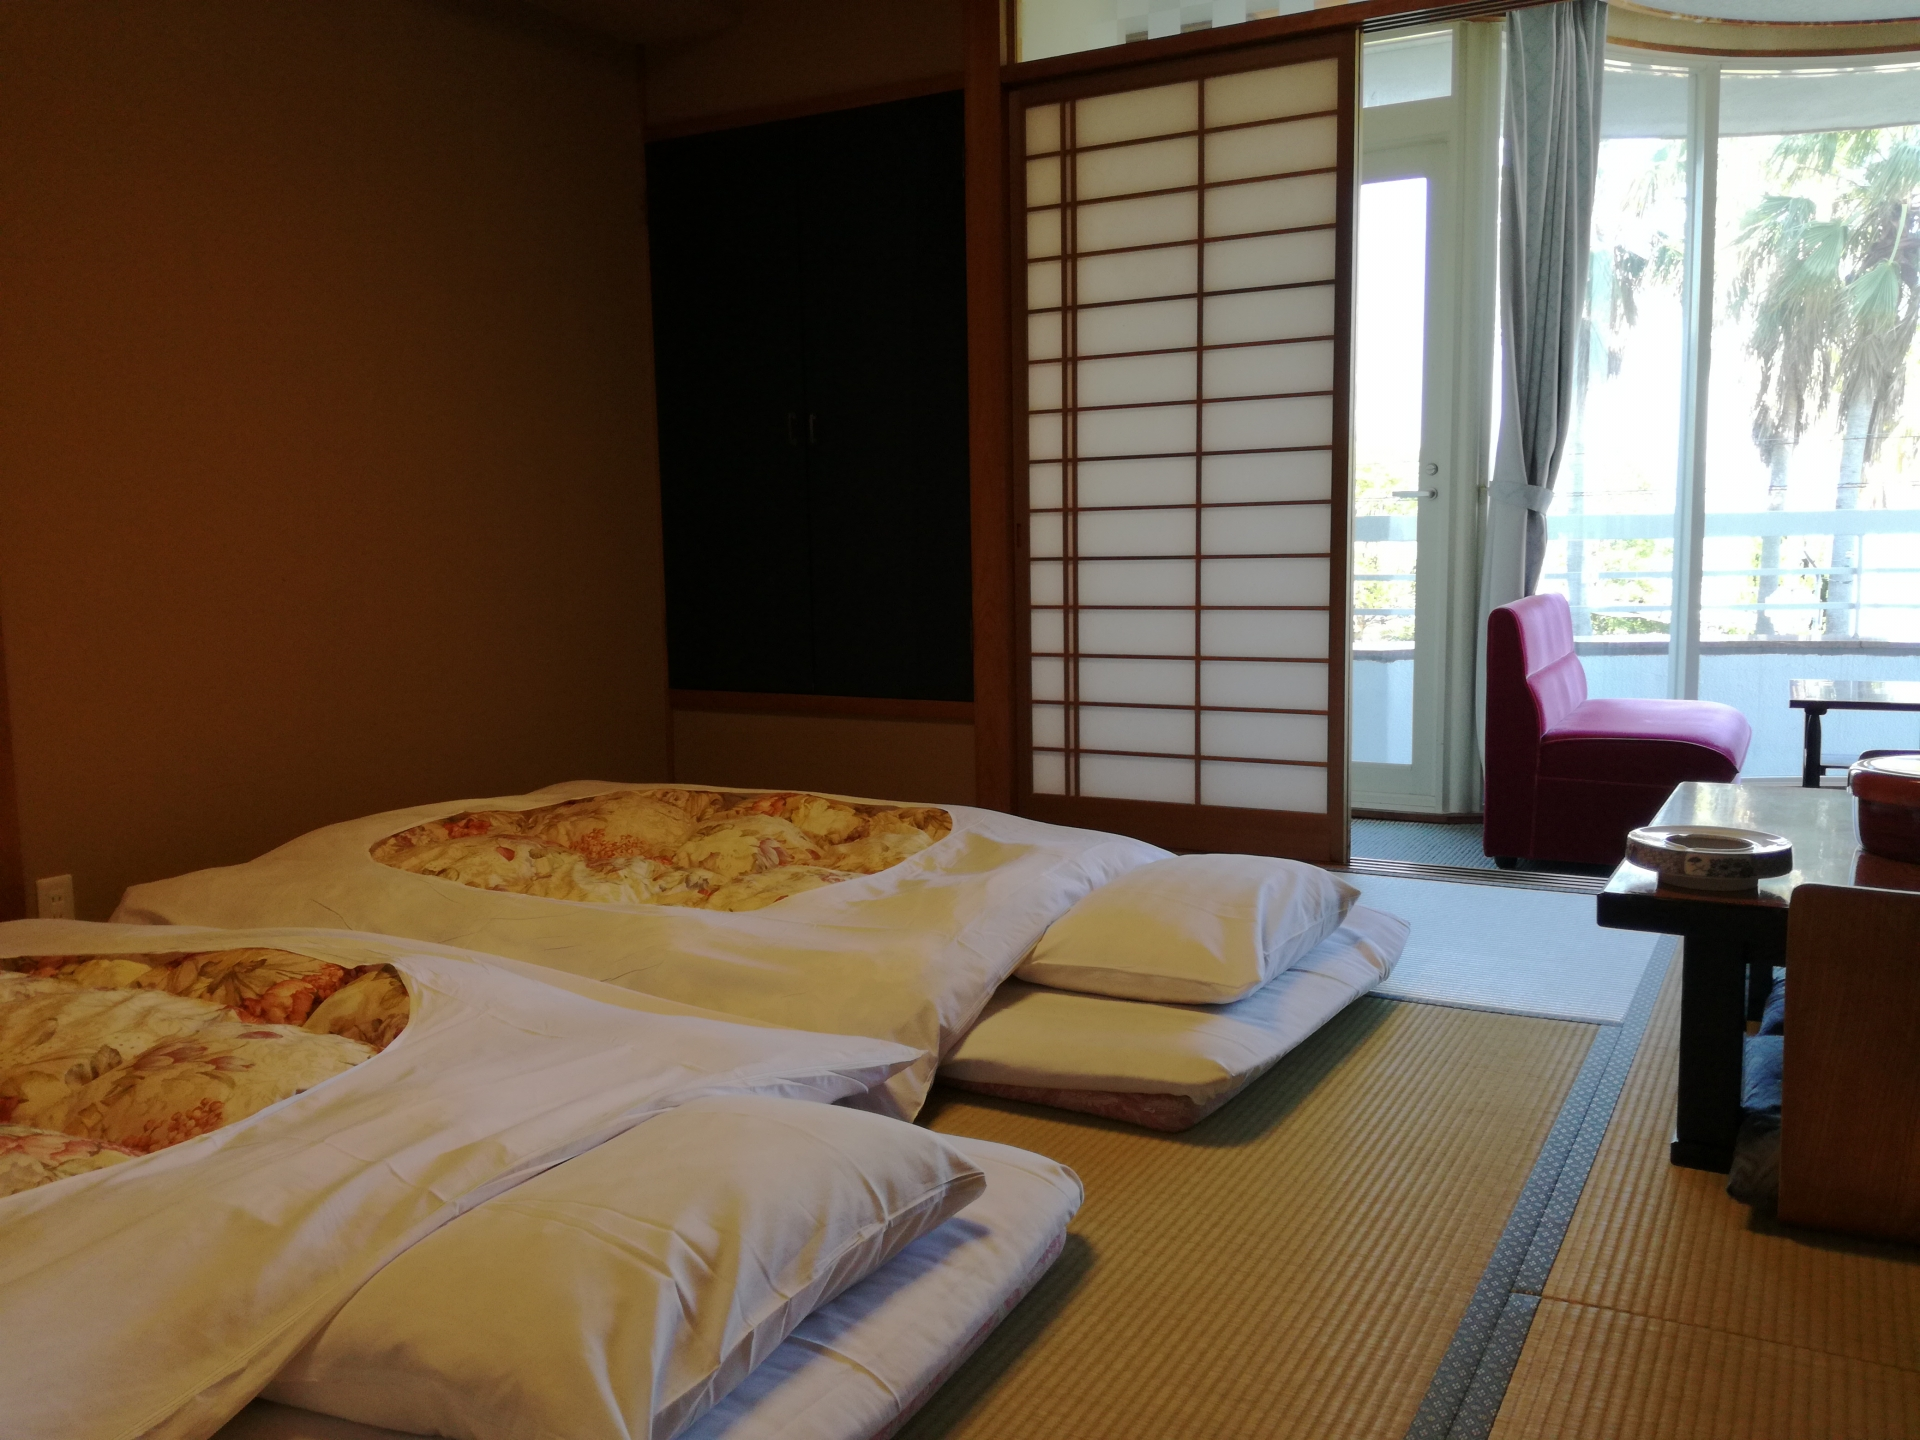 A picture of a room in a ryokan with two futon beds